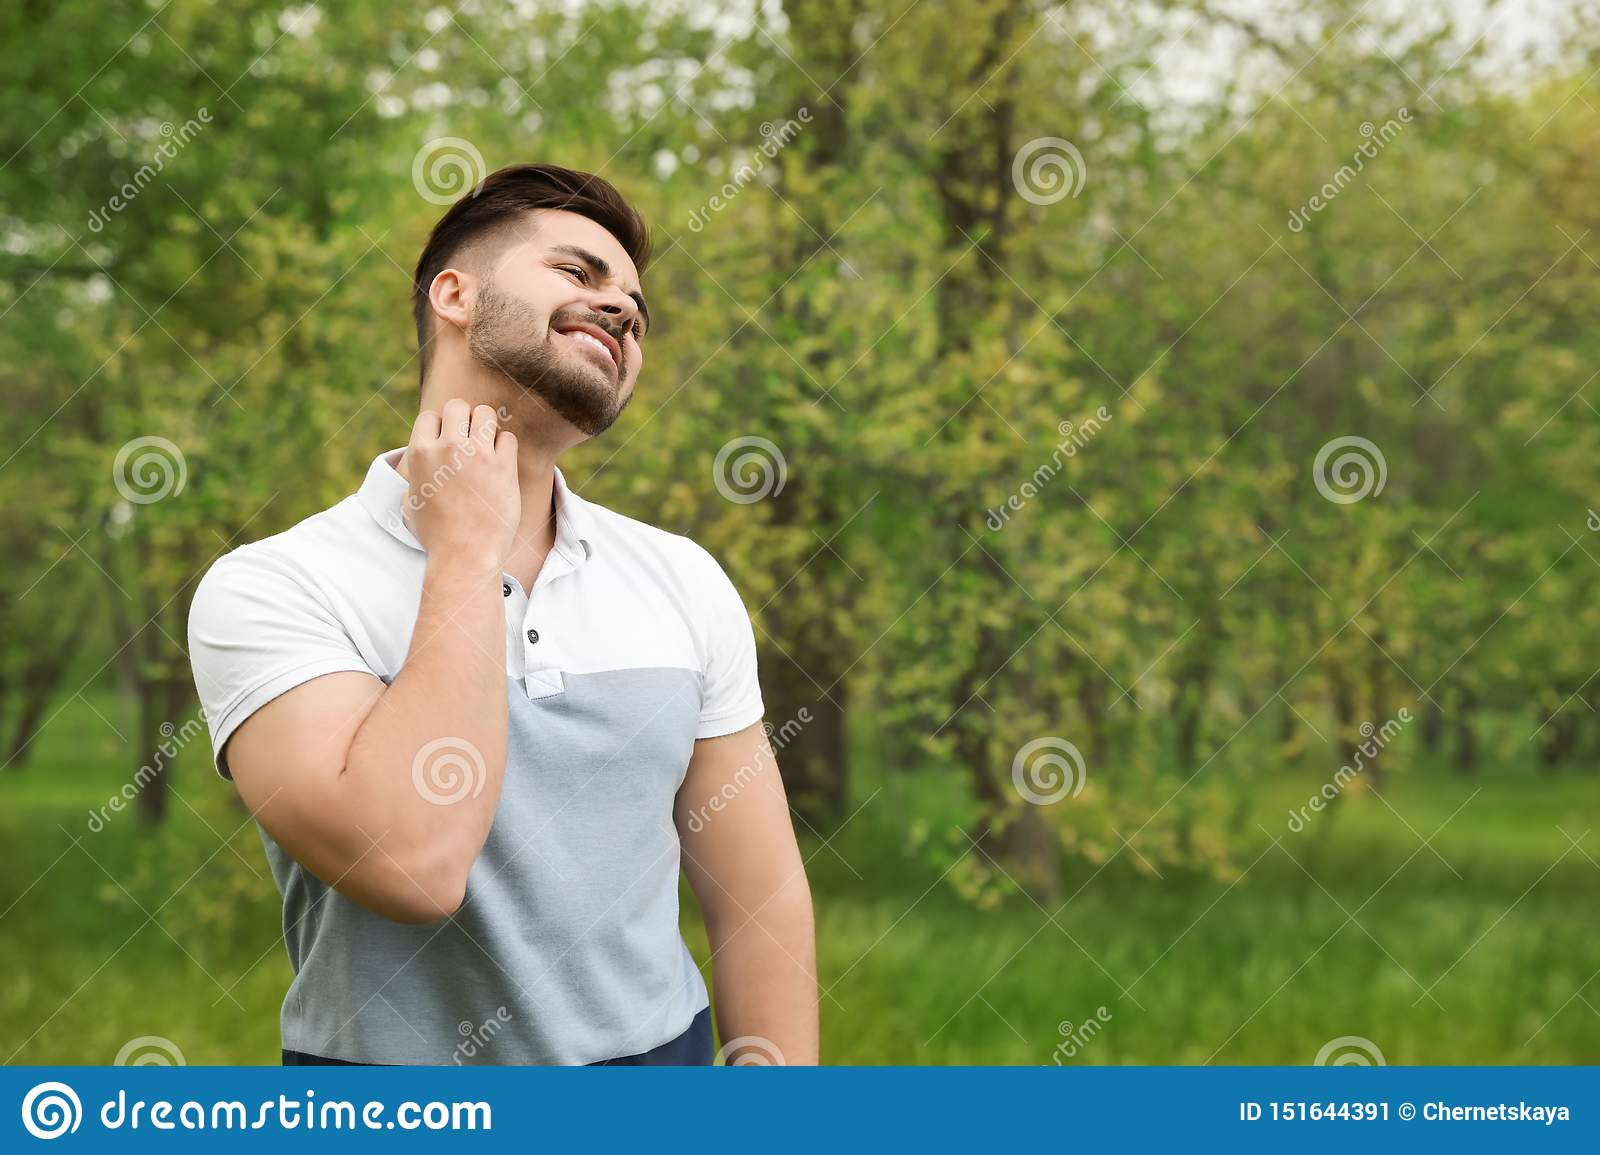 Young man scratching neck outdoors. Seasonal allergy